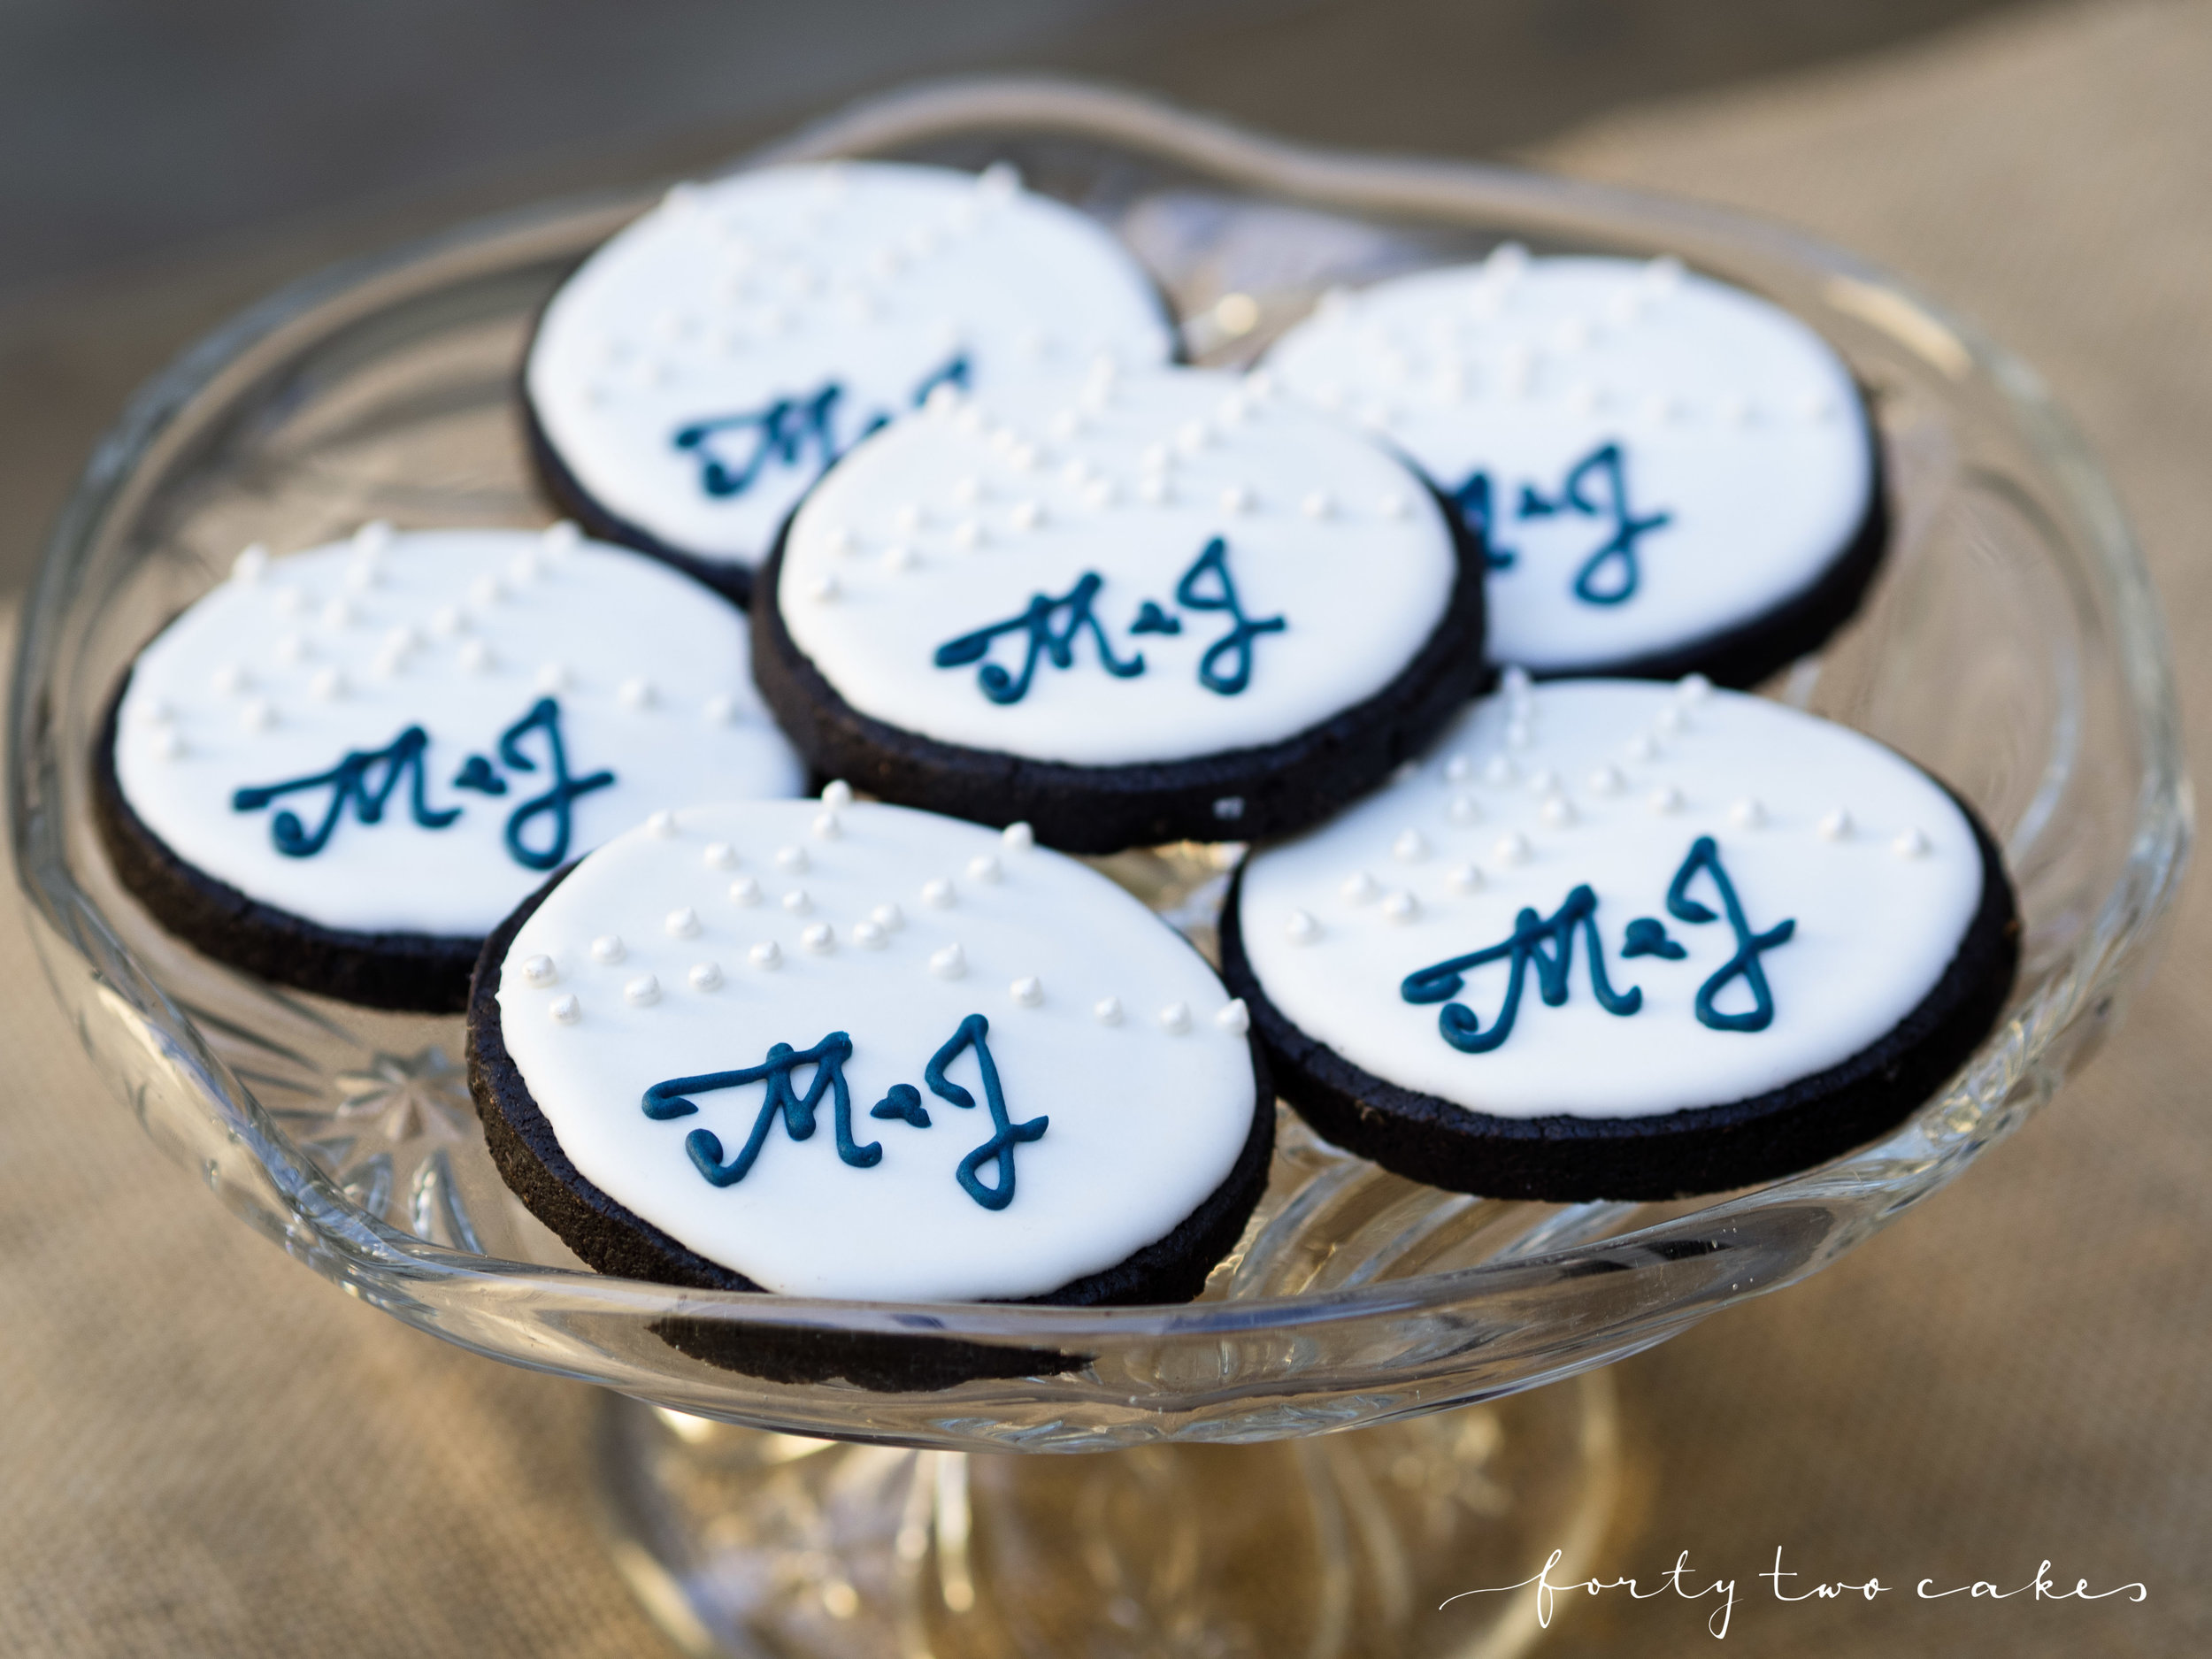 Forty-Two Cakes - Small Things-16.jpg